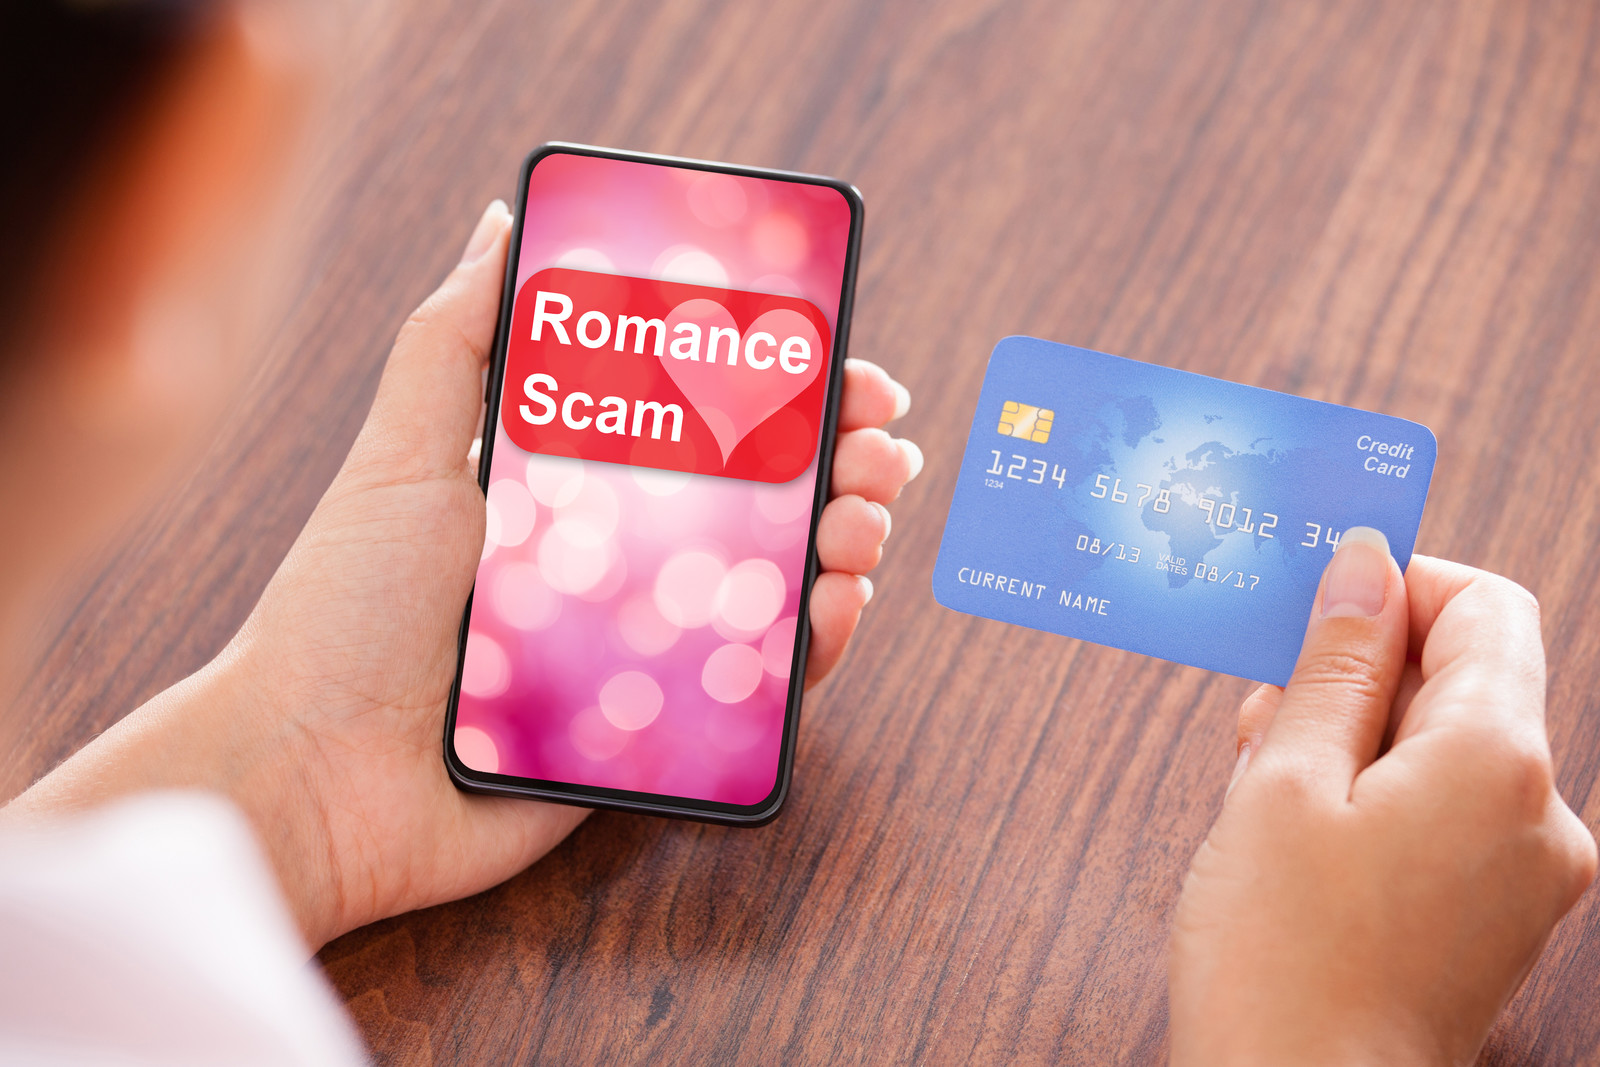 A person blurred out, holding a phone that says Romance Scam in their left hand and in their right hand a credit card